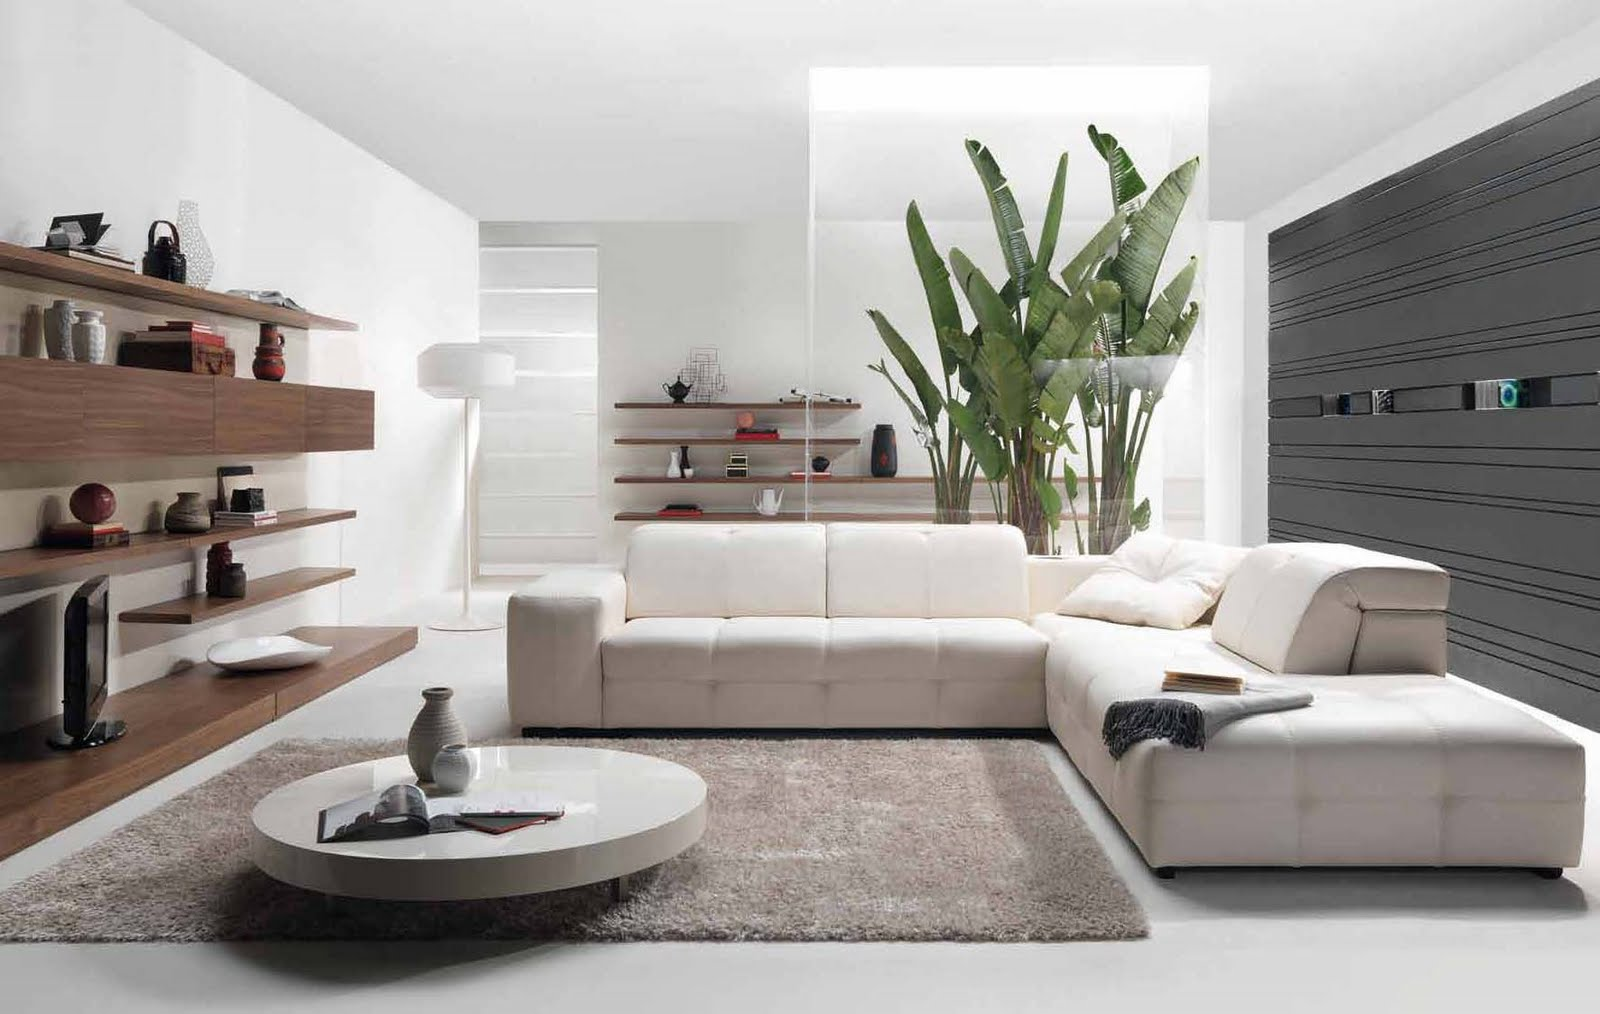 Modern home interior furniture designs diy ideas for Family room couch ideas